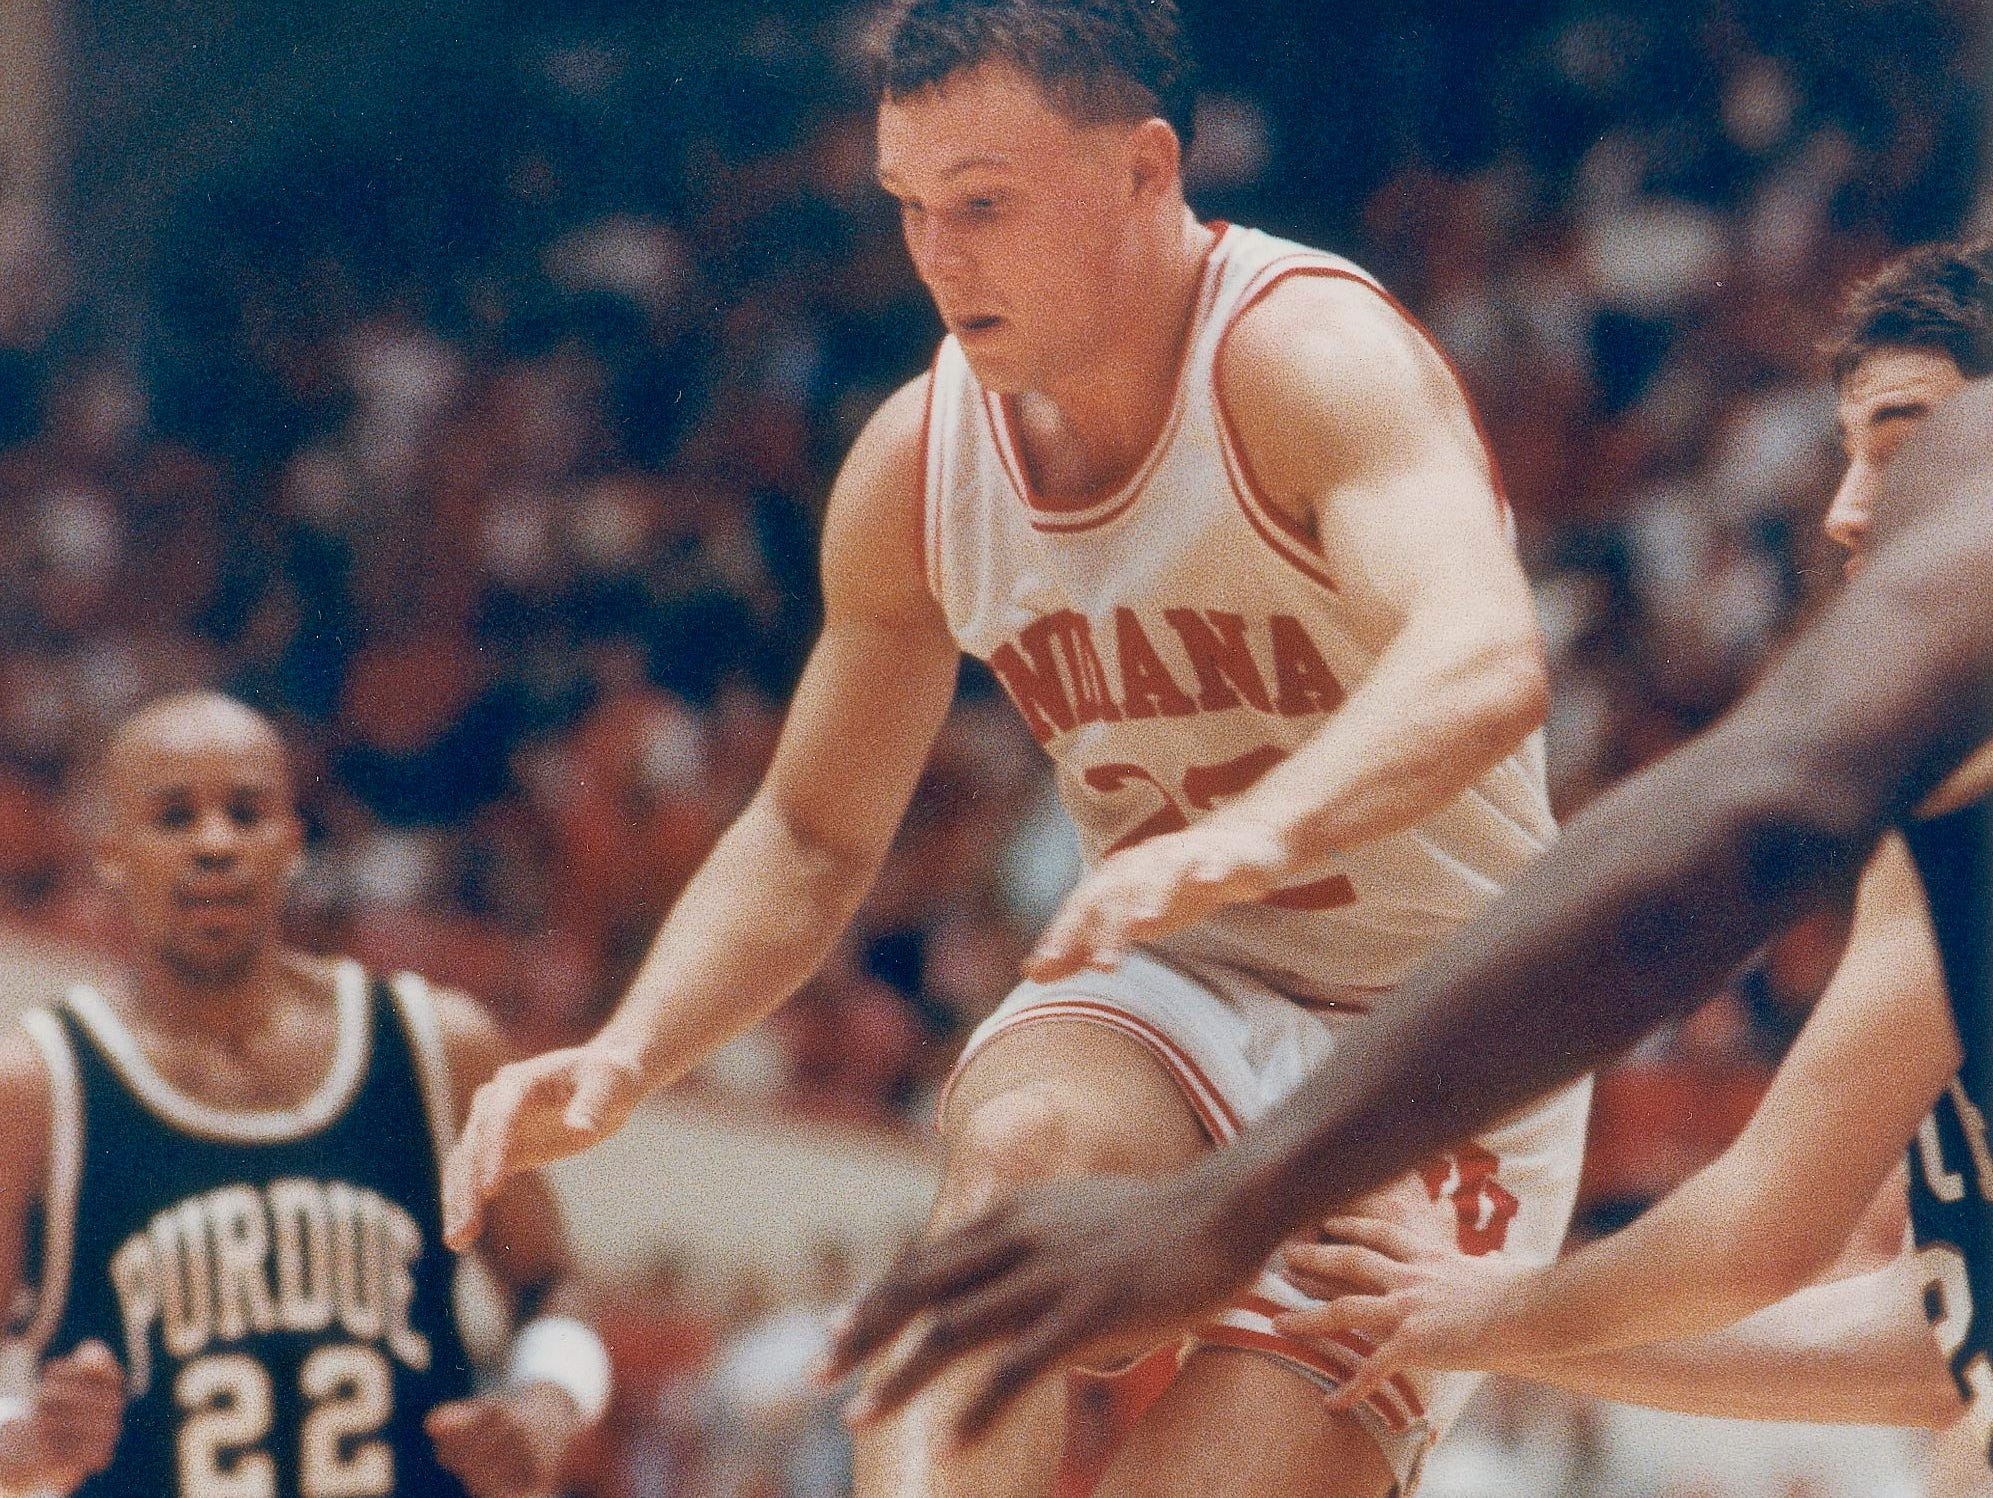 Damon Bailey went on to play for Indiana University, coached by Bob Knight.